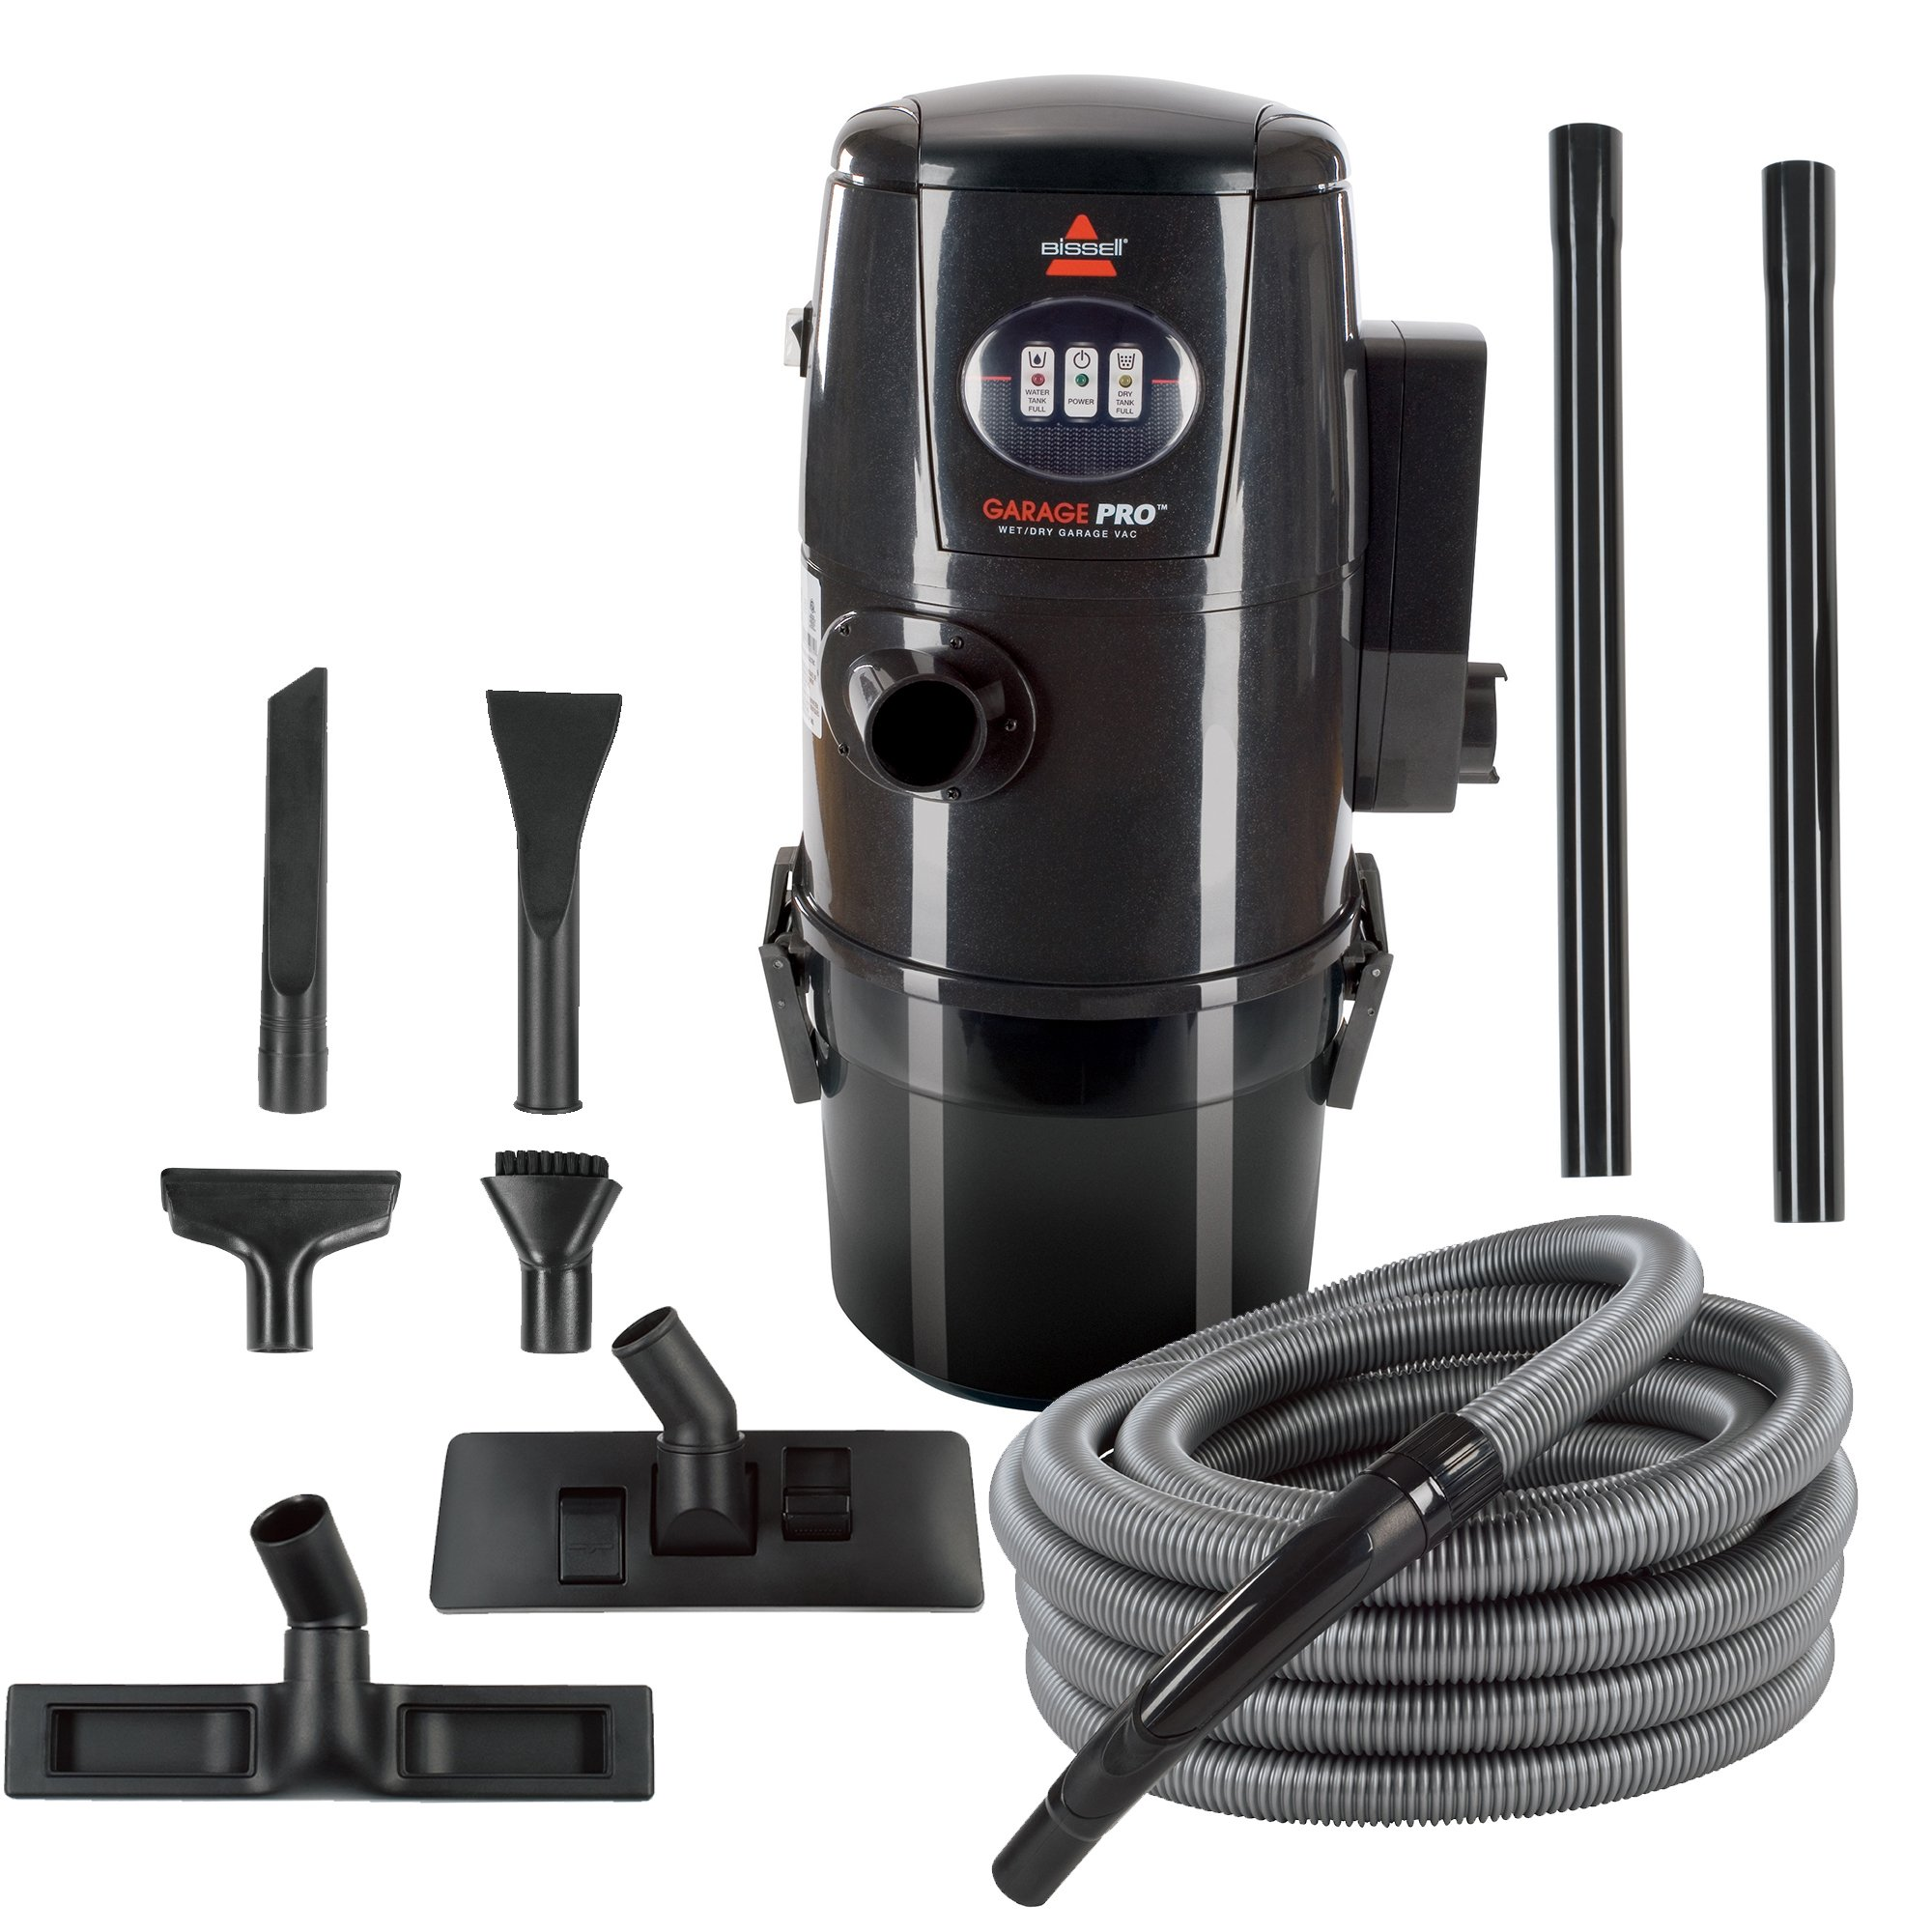 Bissell Garage Pro Wall-Mounted Wet Dry Car Vacuum/Blower with Auto Tool Kit, 18P03 by Bissell